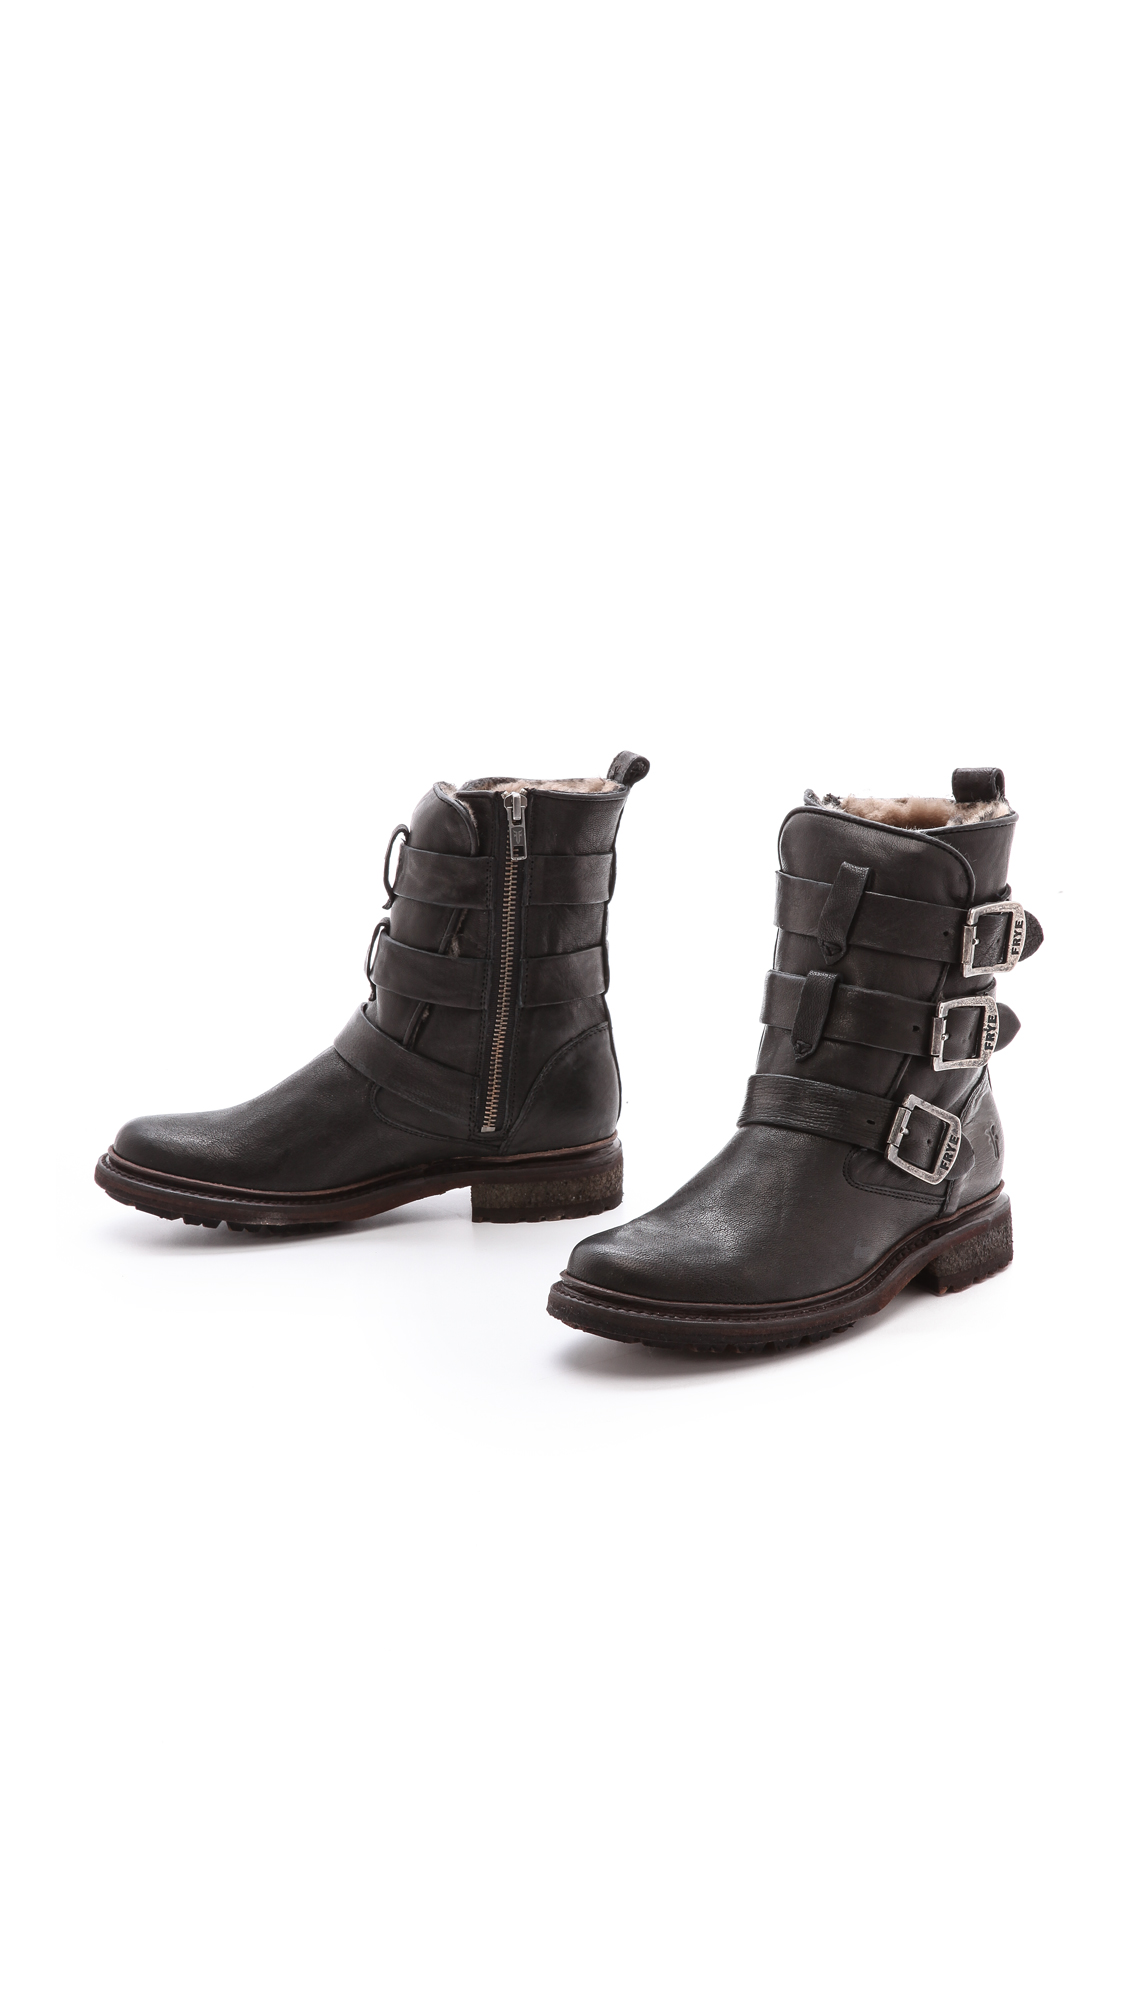 Frye Valerie Shearling Strappy Boots Shopbop D Island Shoes Slip On Zipper Wrinkle Leather Black